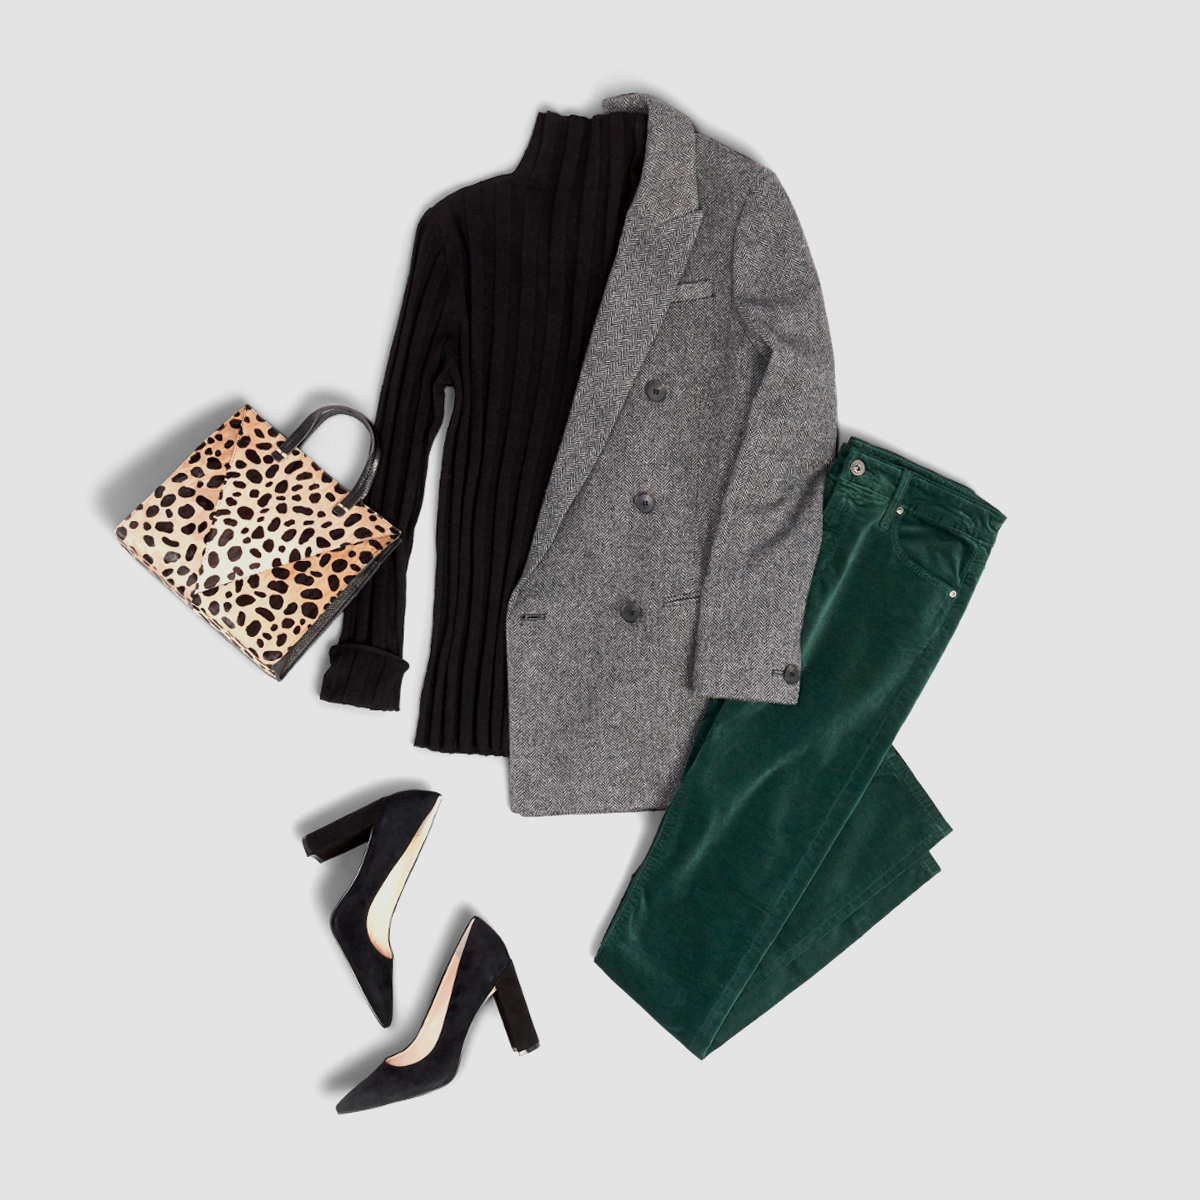 Women's outfit featuring green velvet pants.